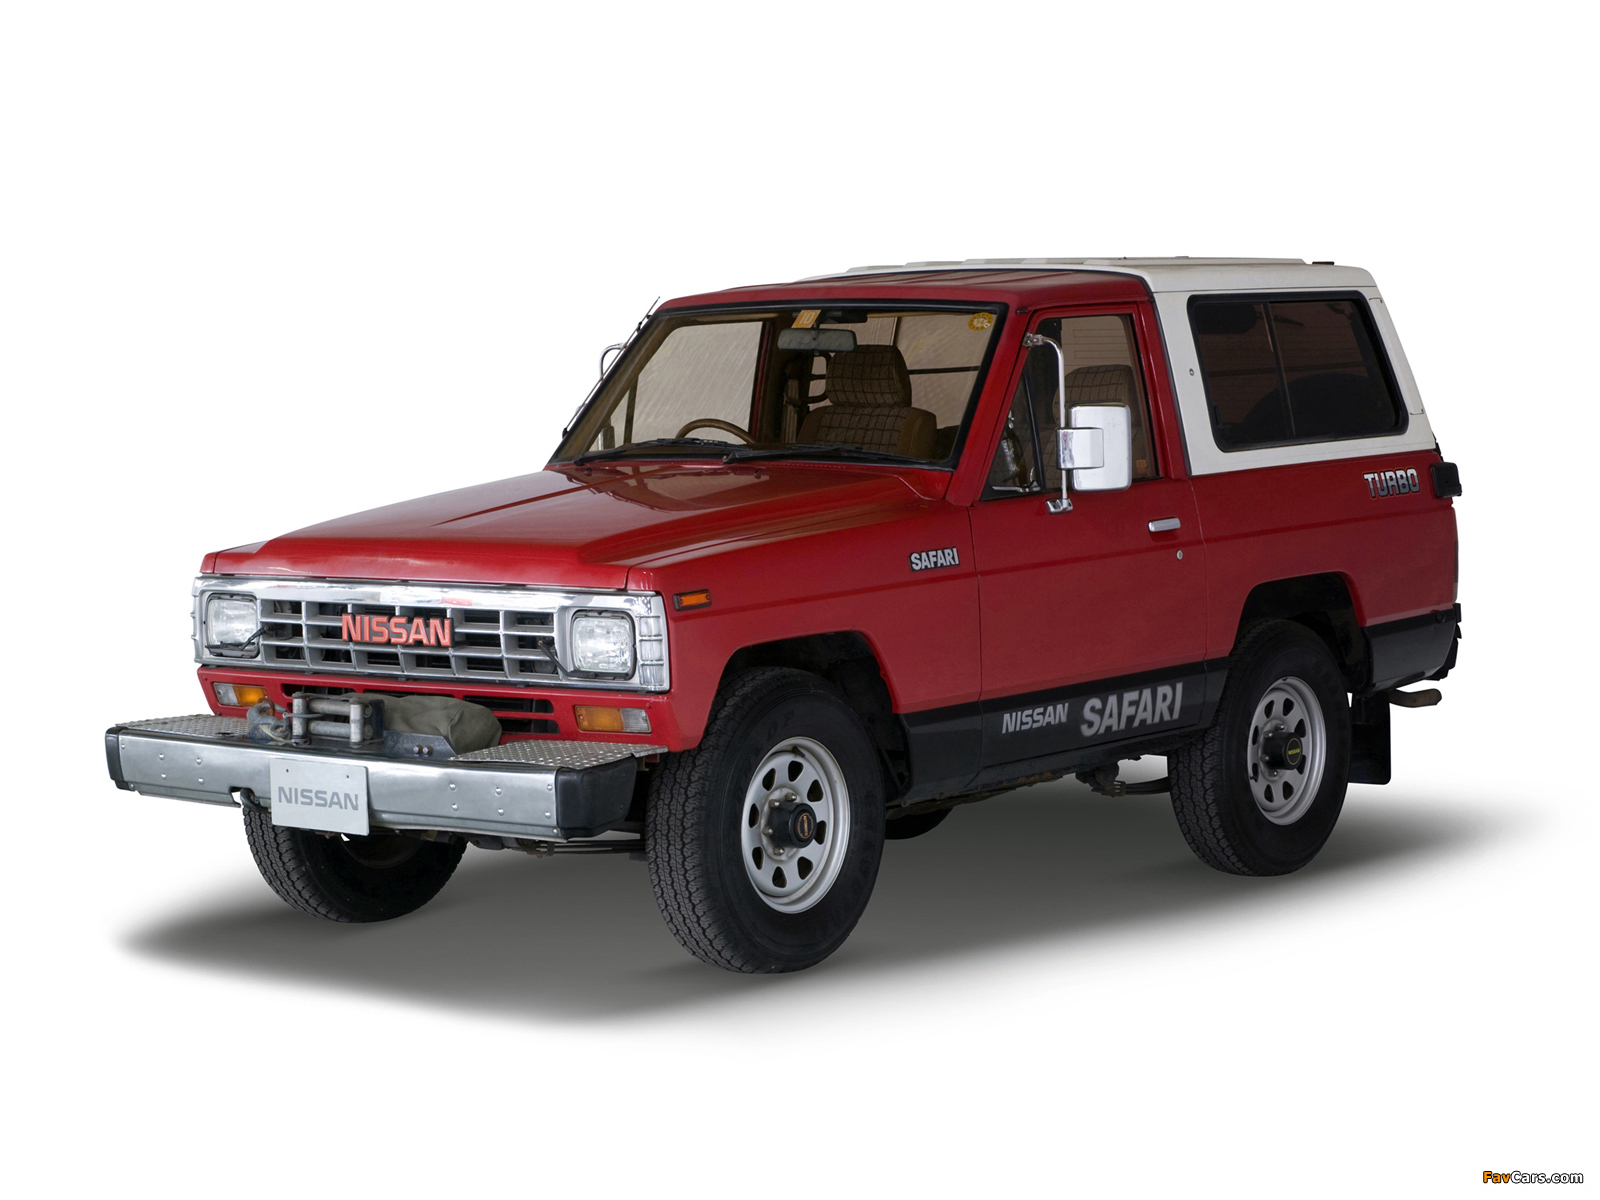 Nissan Safari   pictures, information and specs - Auto-Database.com